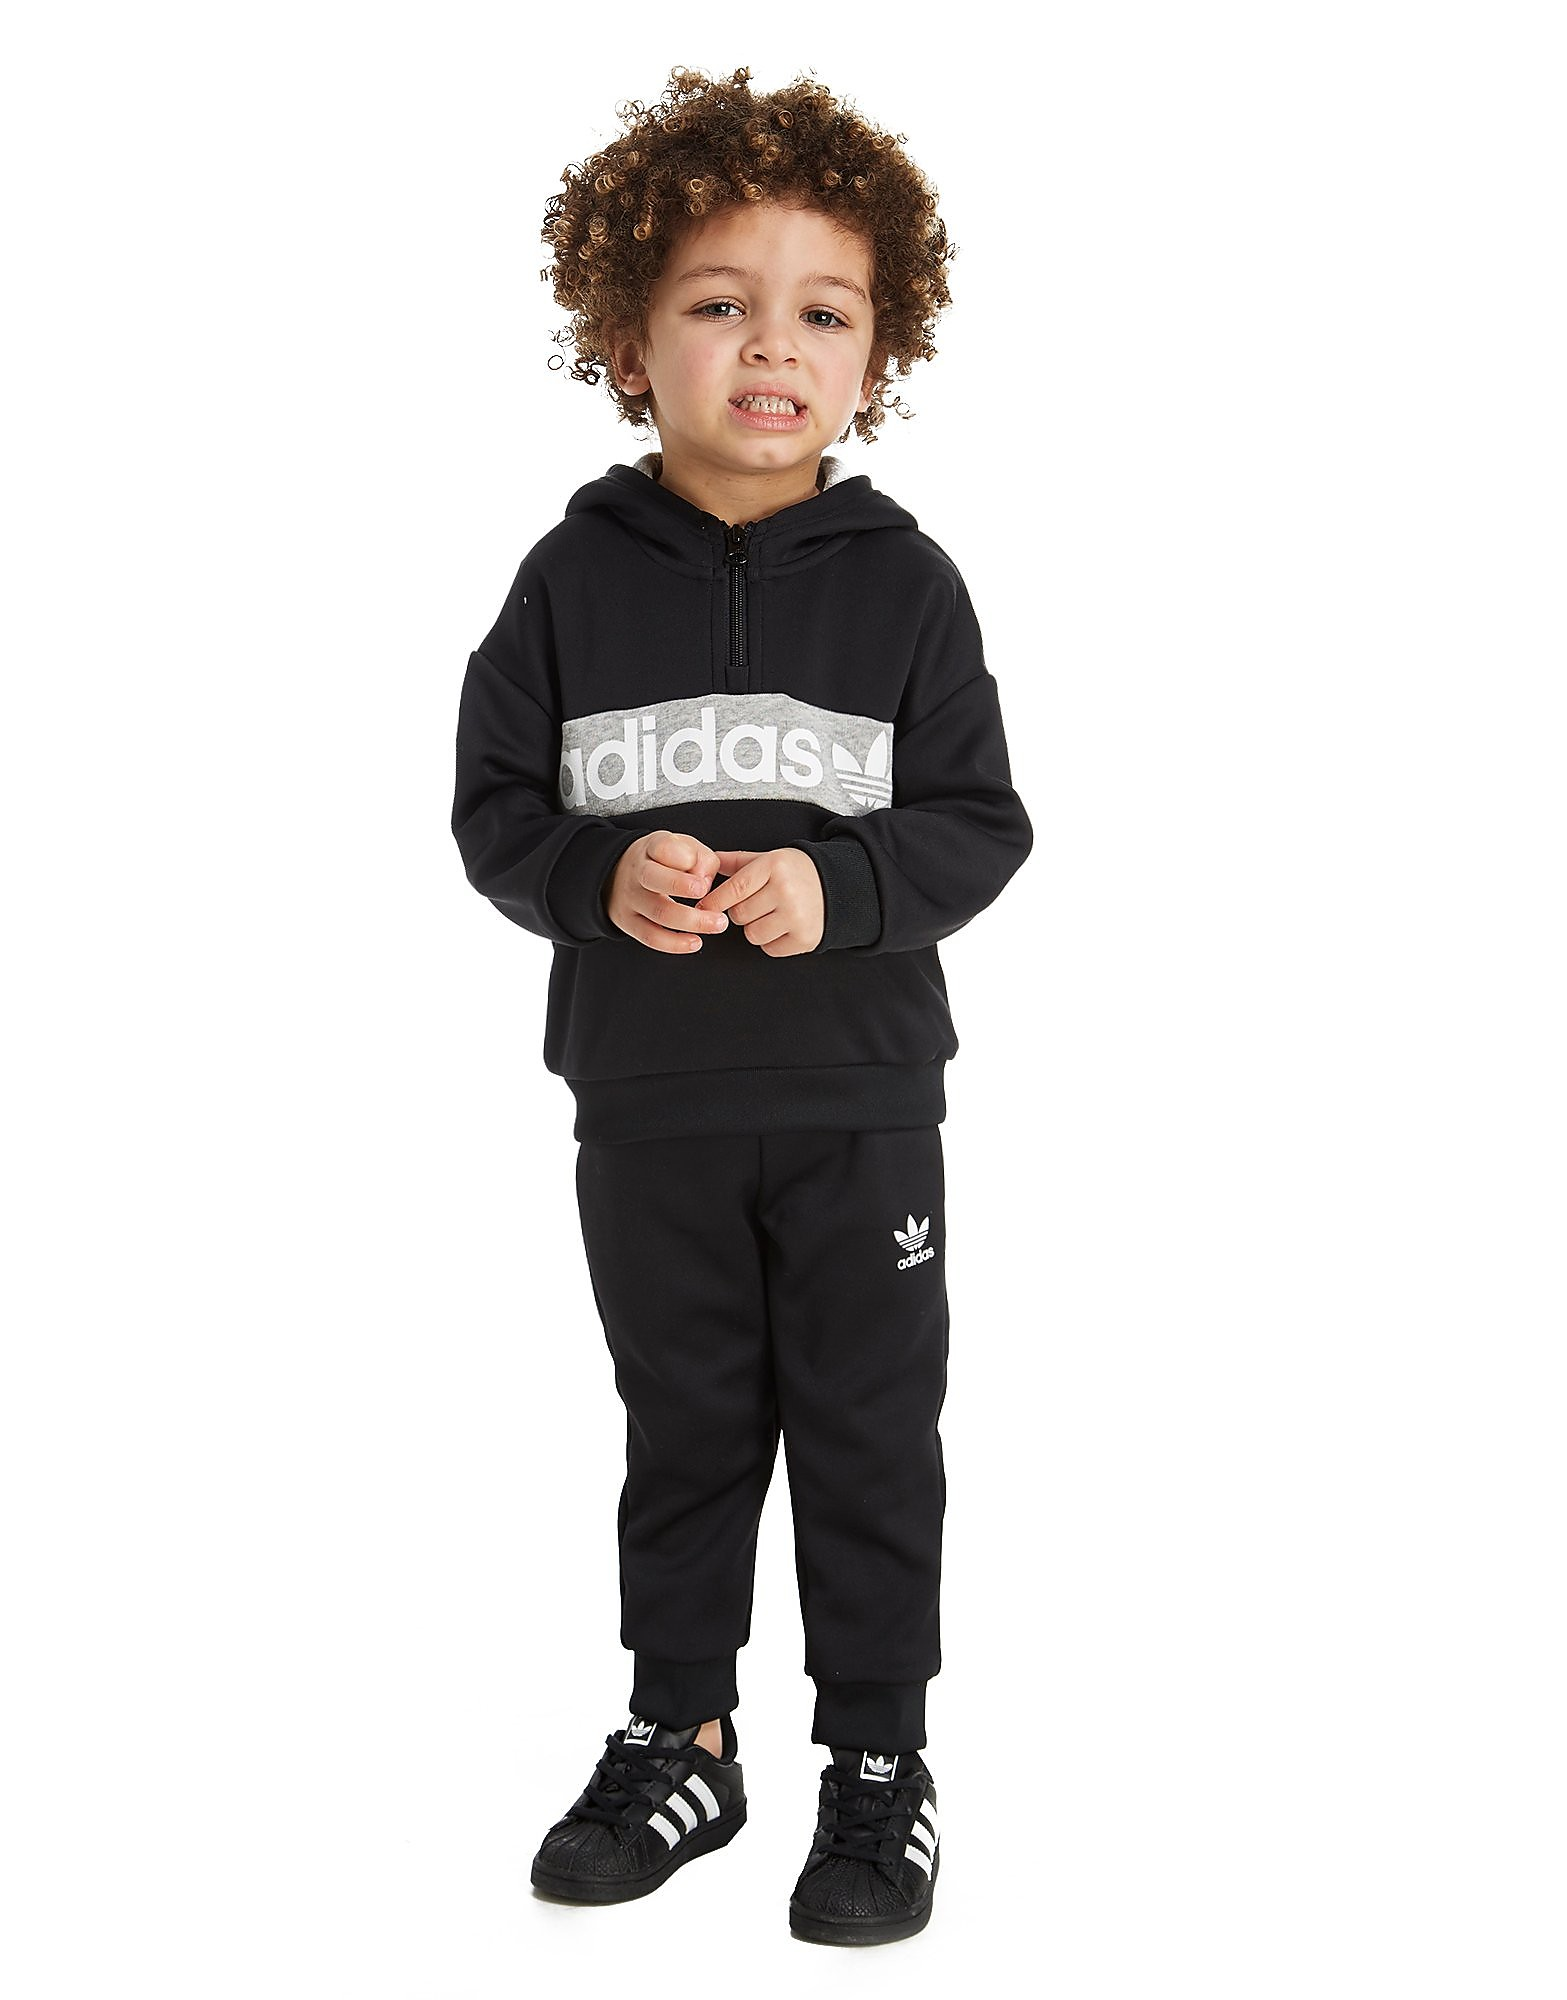 adidas Originals Trefoil 1/2 Zip Suit Infant